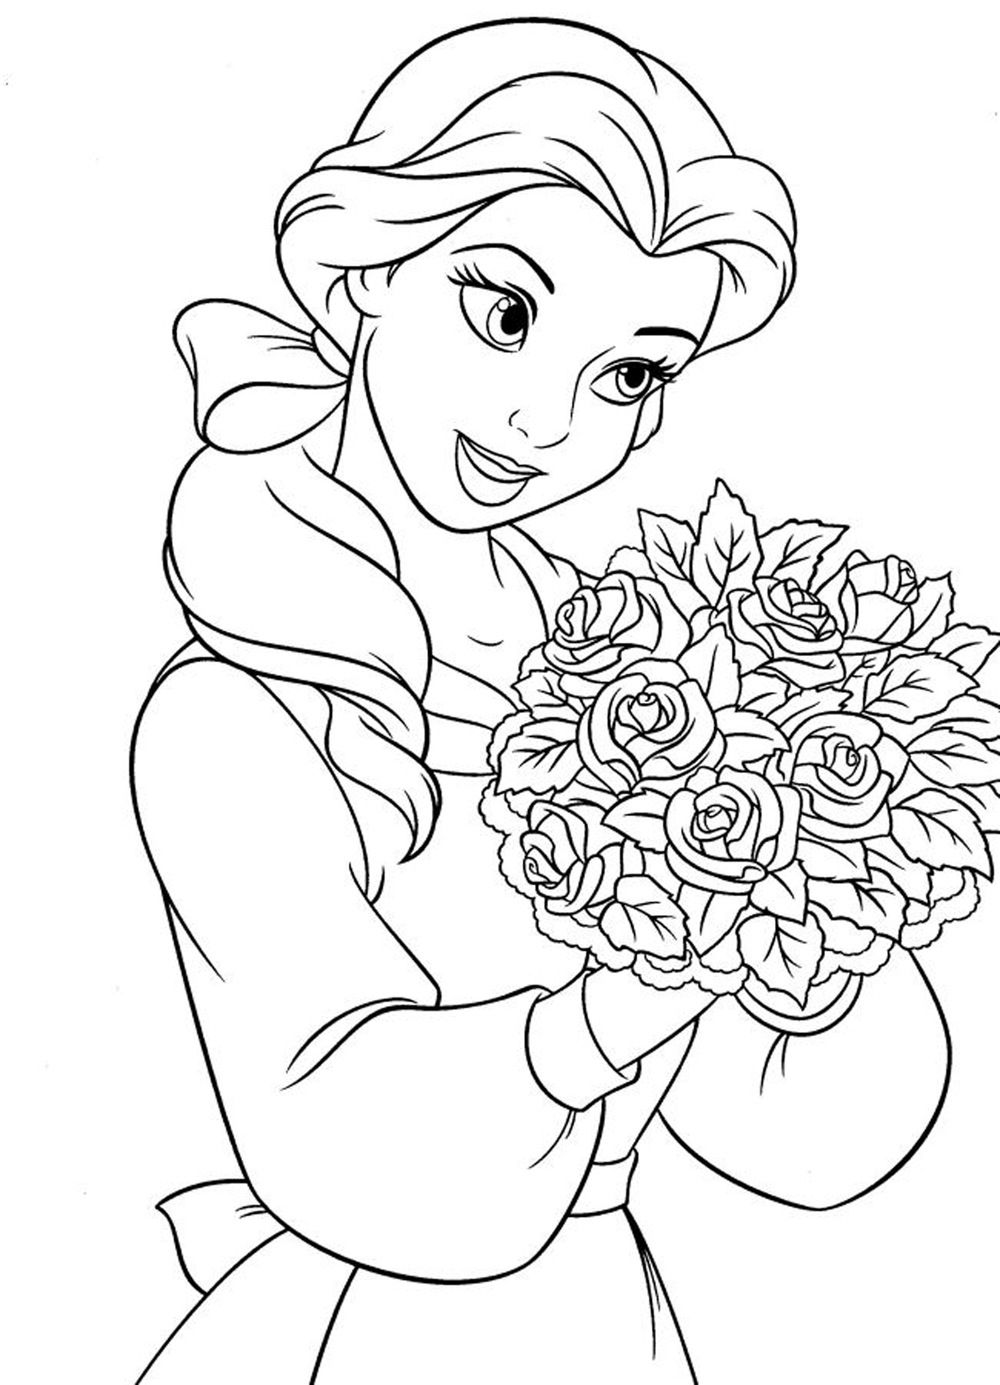 princess coloring pages for girls - Free Large Images ...